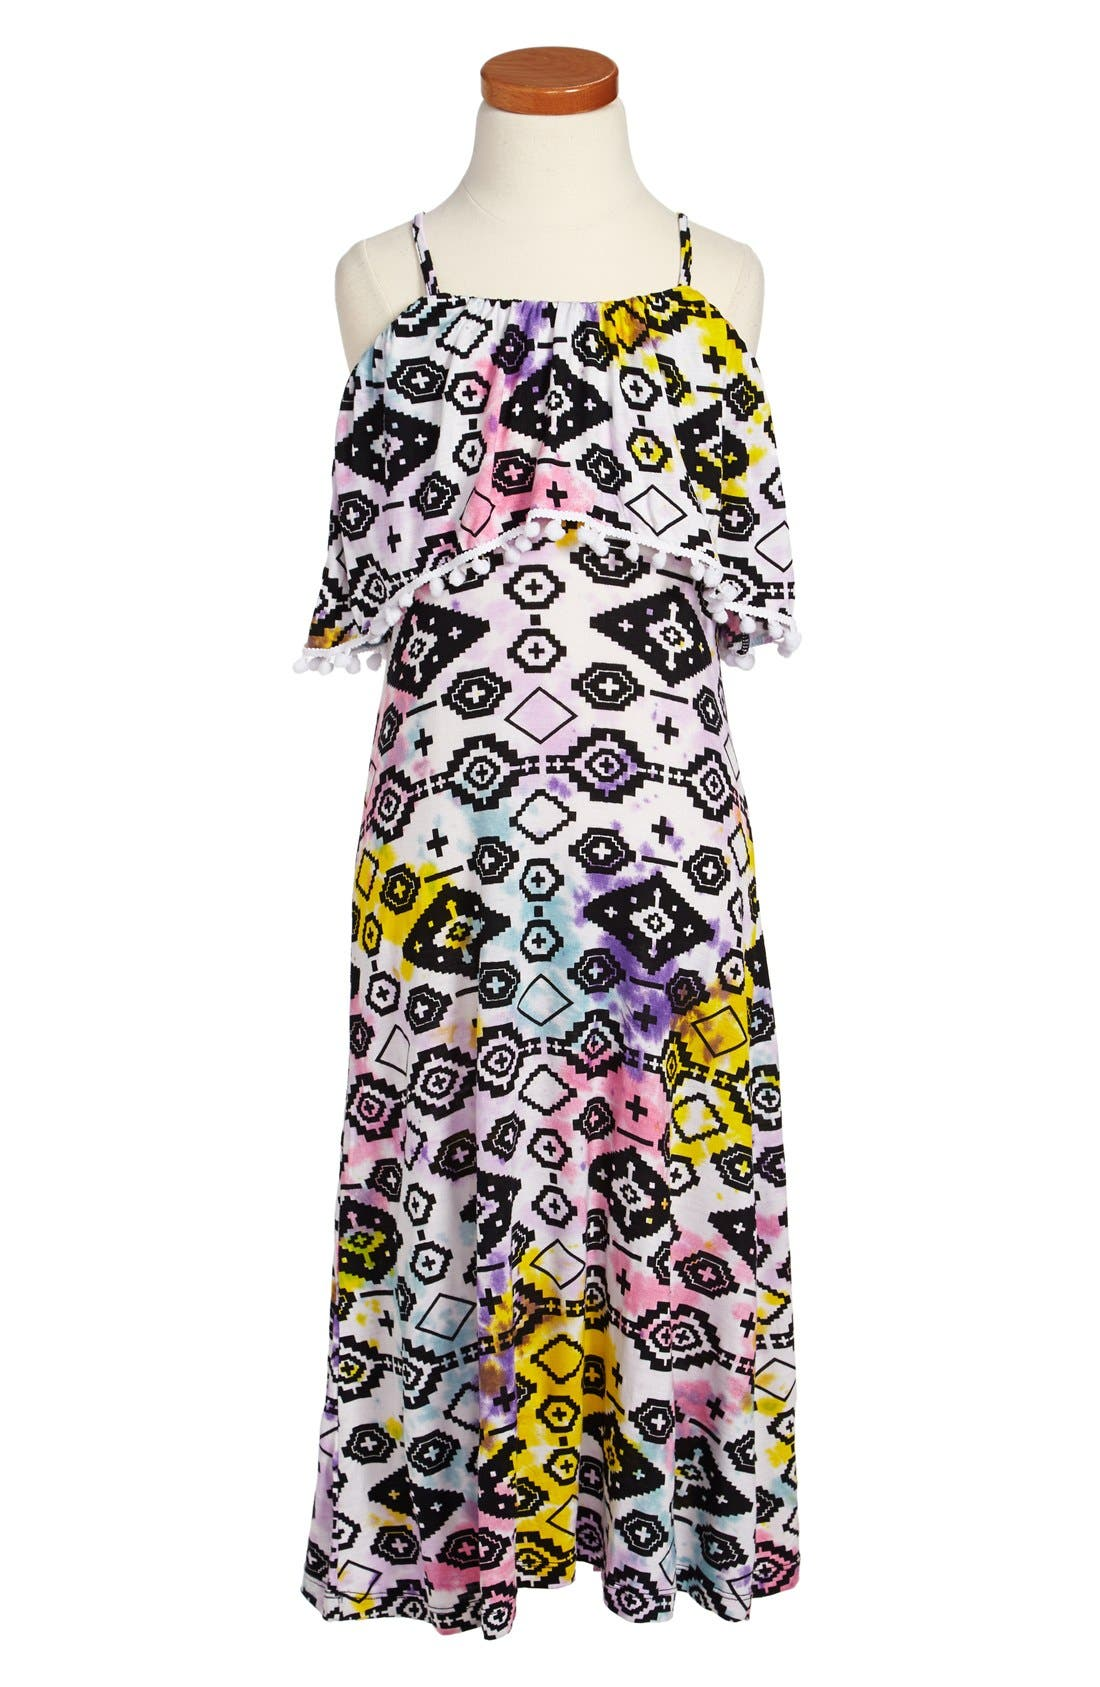 Alternate Image 1 Selected - Flowers by Zoe Tie Dye Maxi Dress (Big Girls)